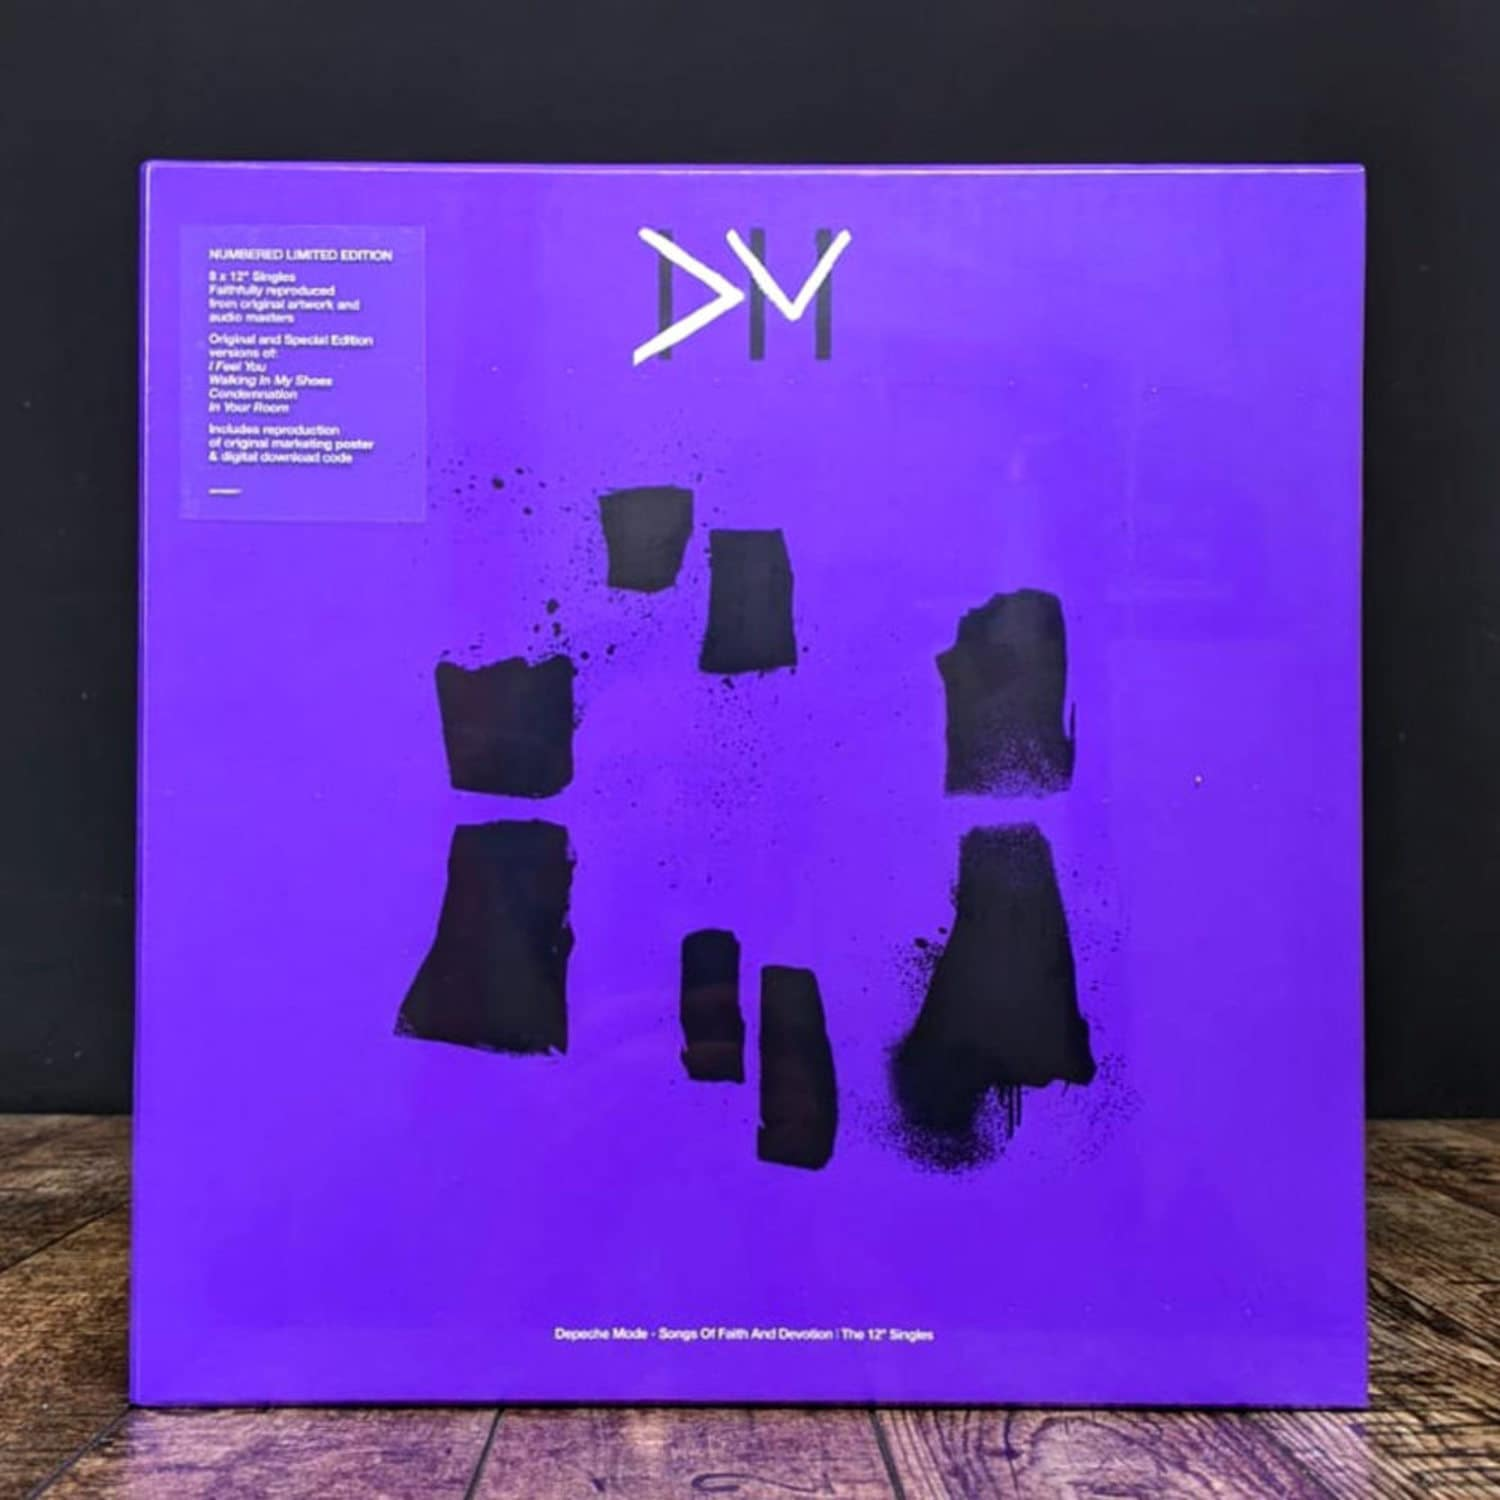 Depeche Mode - SONGS OF FAITH AND DEVOTION-THE 12Inch SINGLES